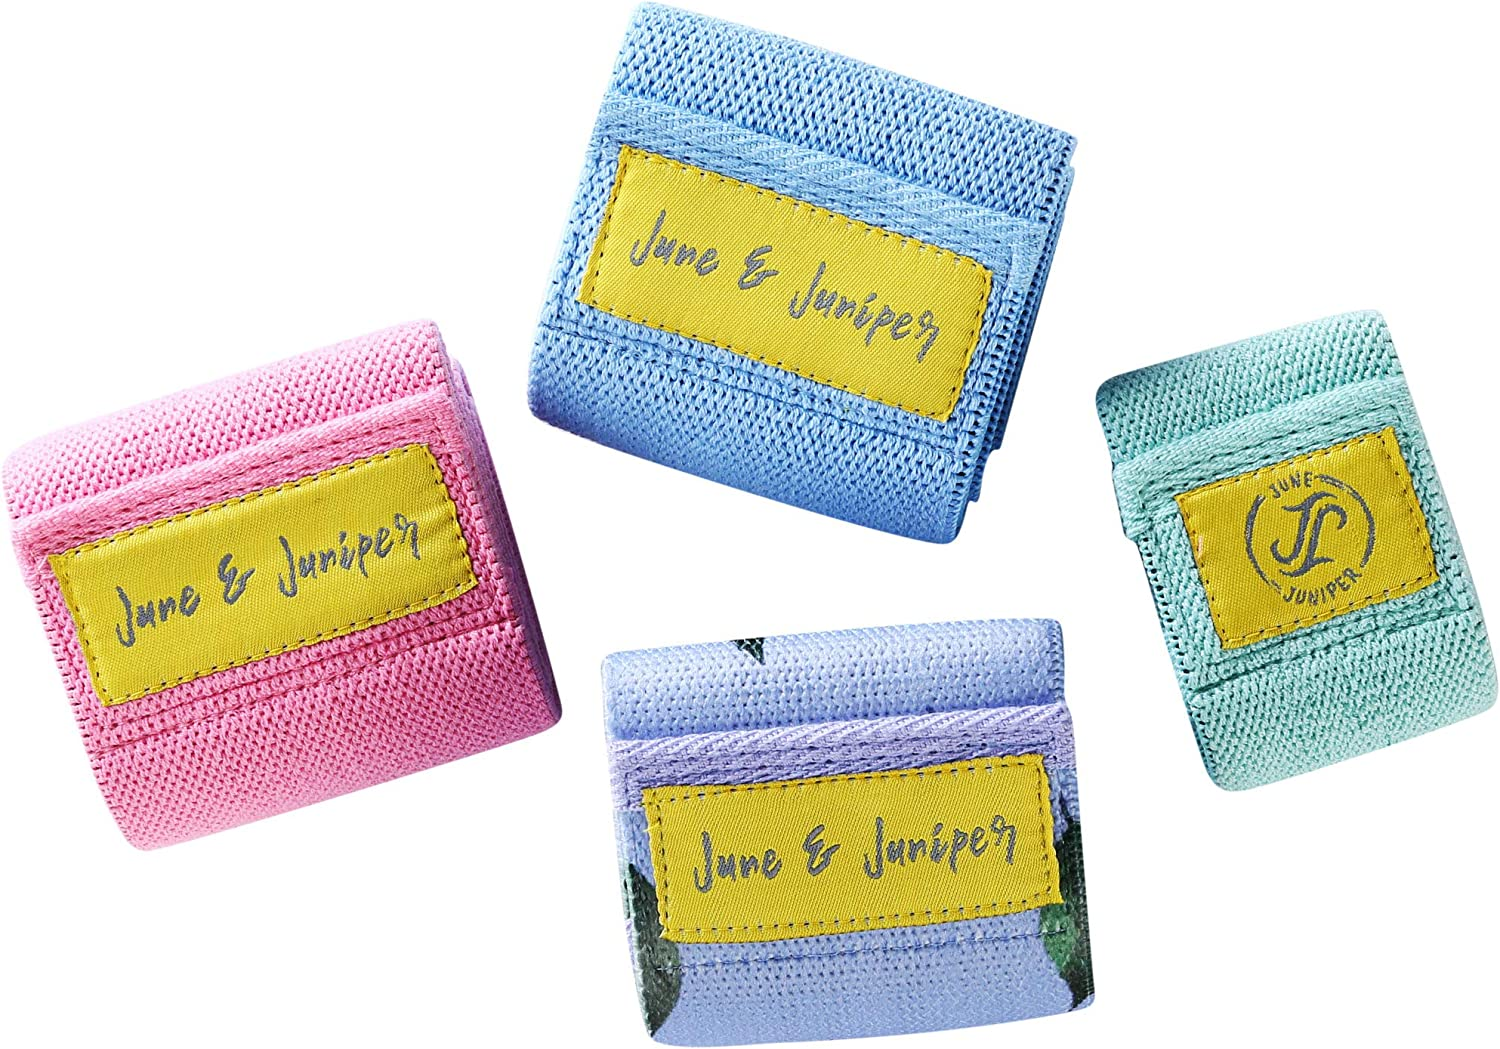 JUNE JJ JUNIPER Fabric Resistance Bands Set for Legs and Butt, 4 Pack Booty Bands,Exercise Bands,Workout Bands,Home Gym Workout Equipment with Core Sliders